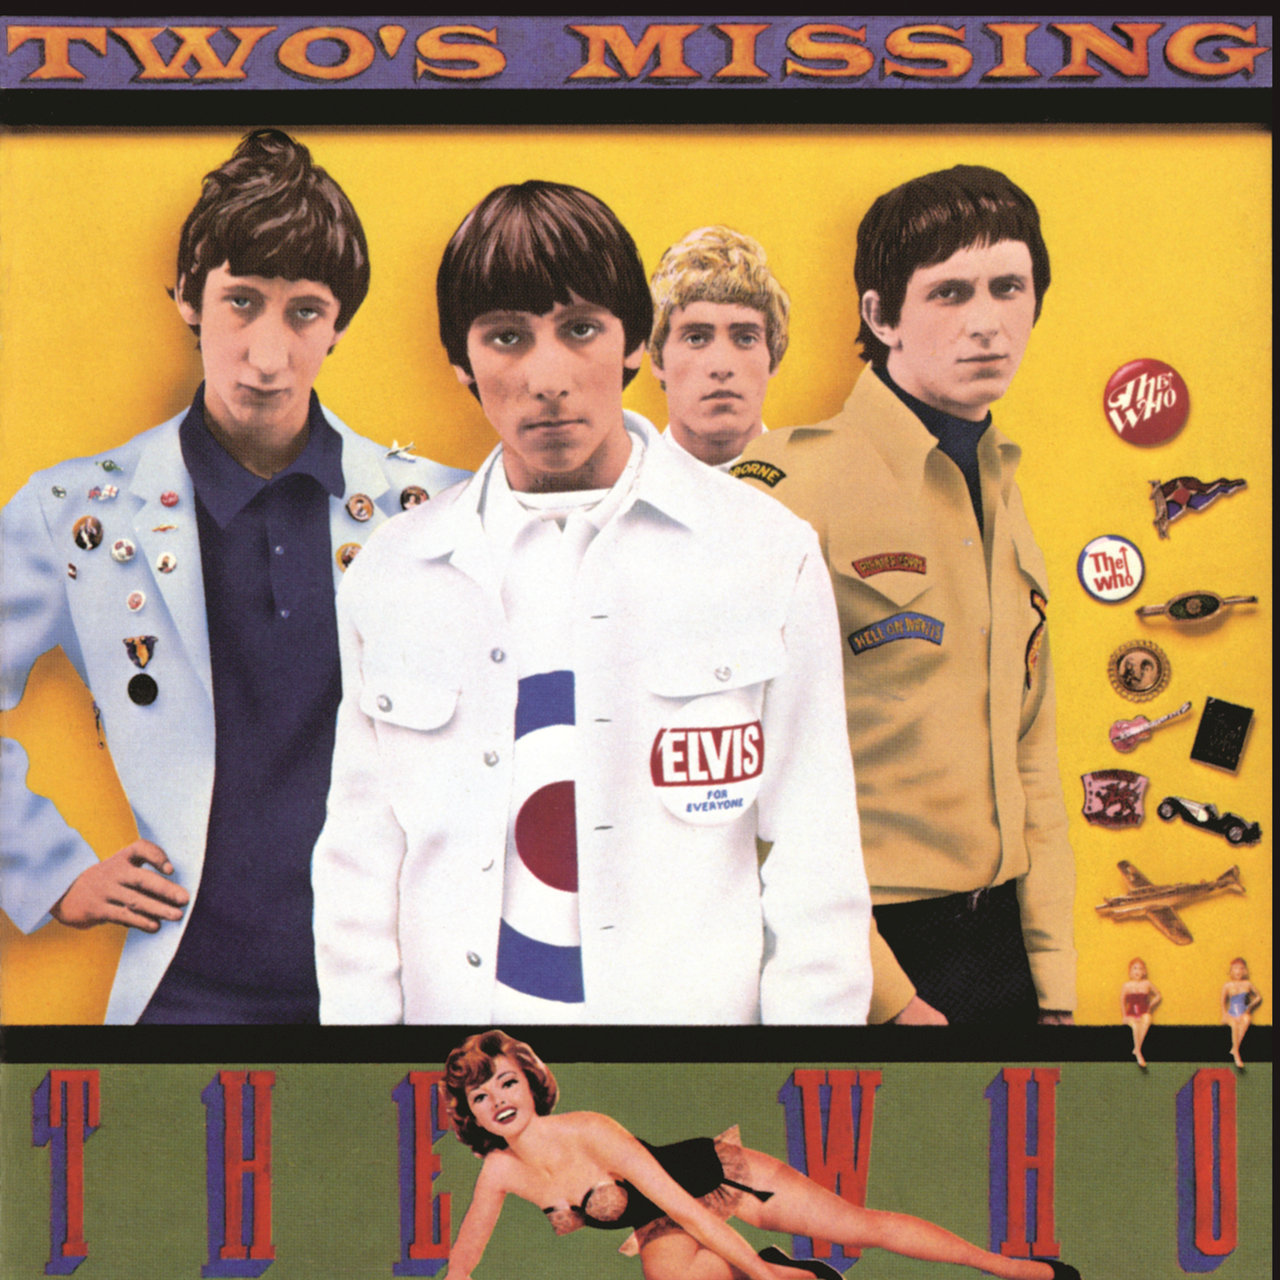 Two's Missing